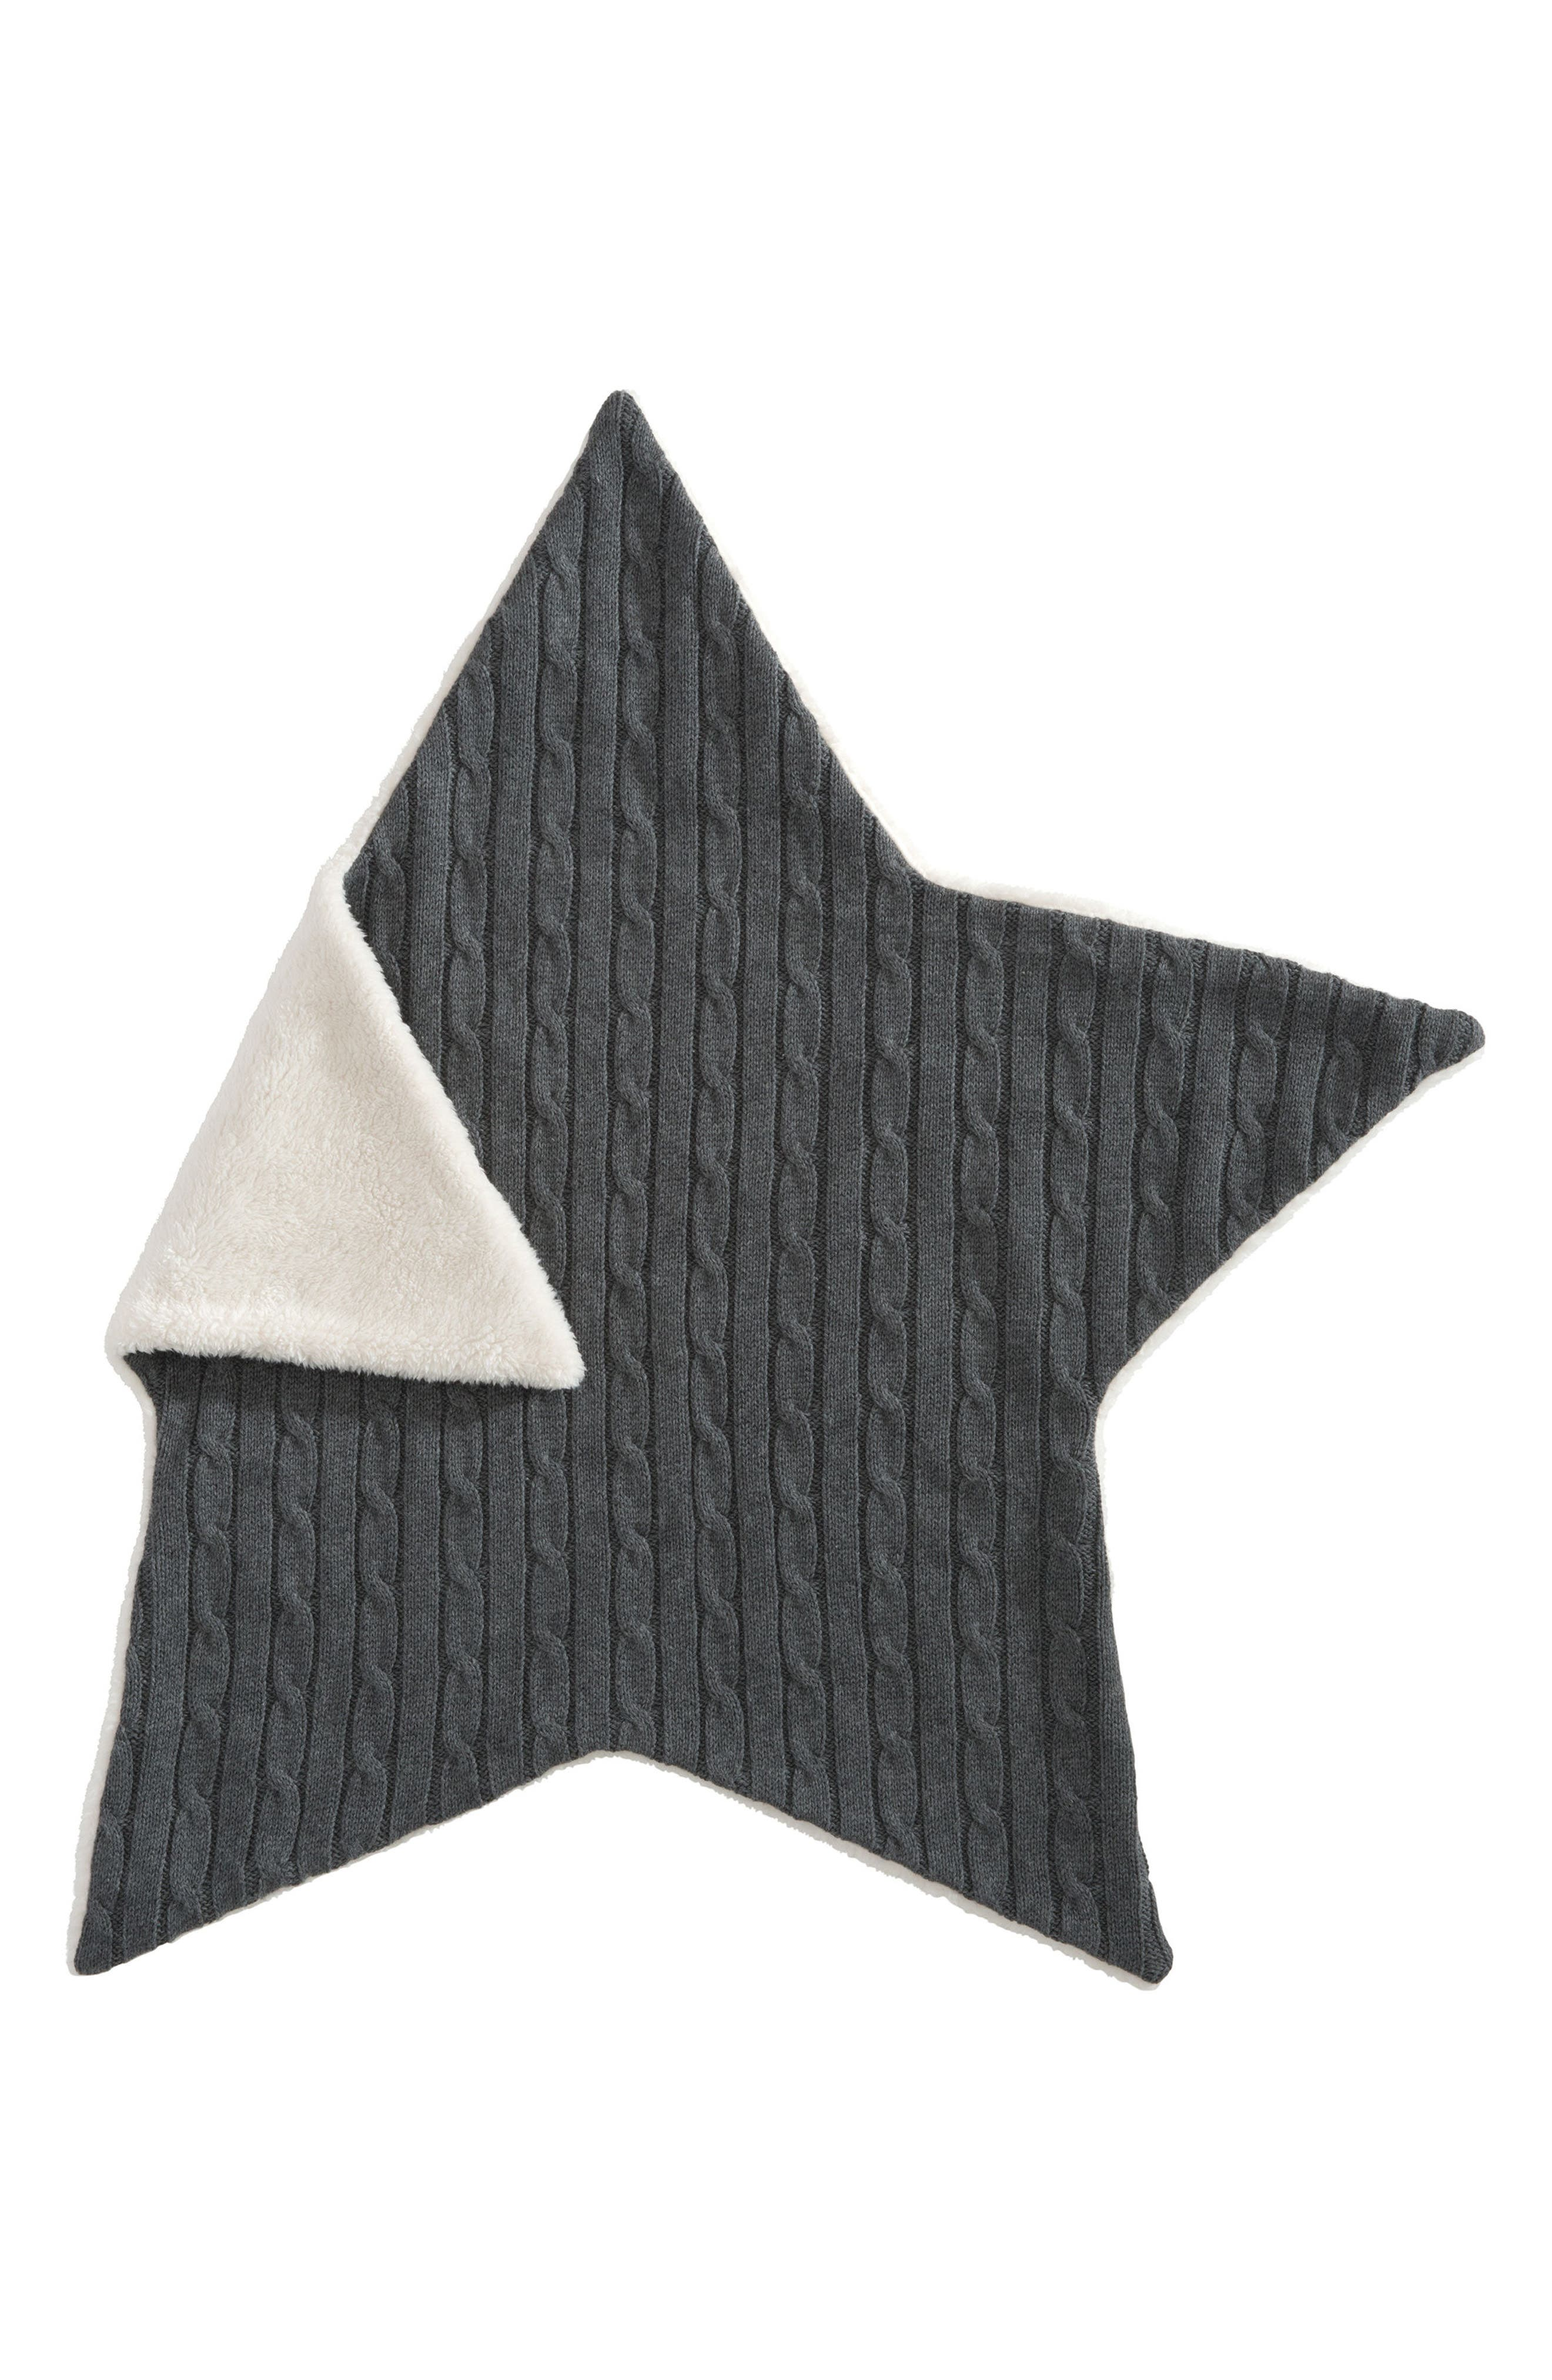 Cable Knit Star Blanket,                             Alternate thumbnail 2, color,                             020